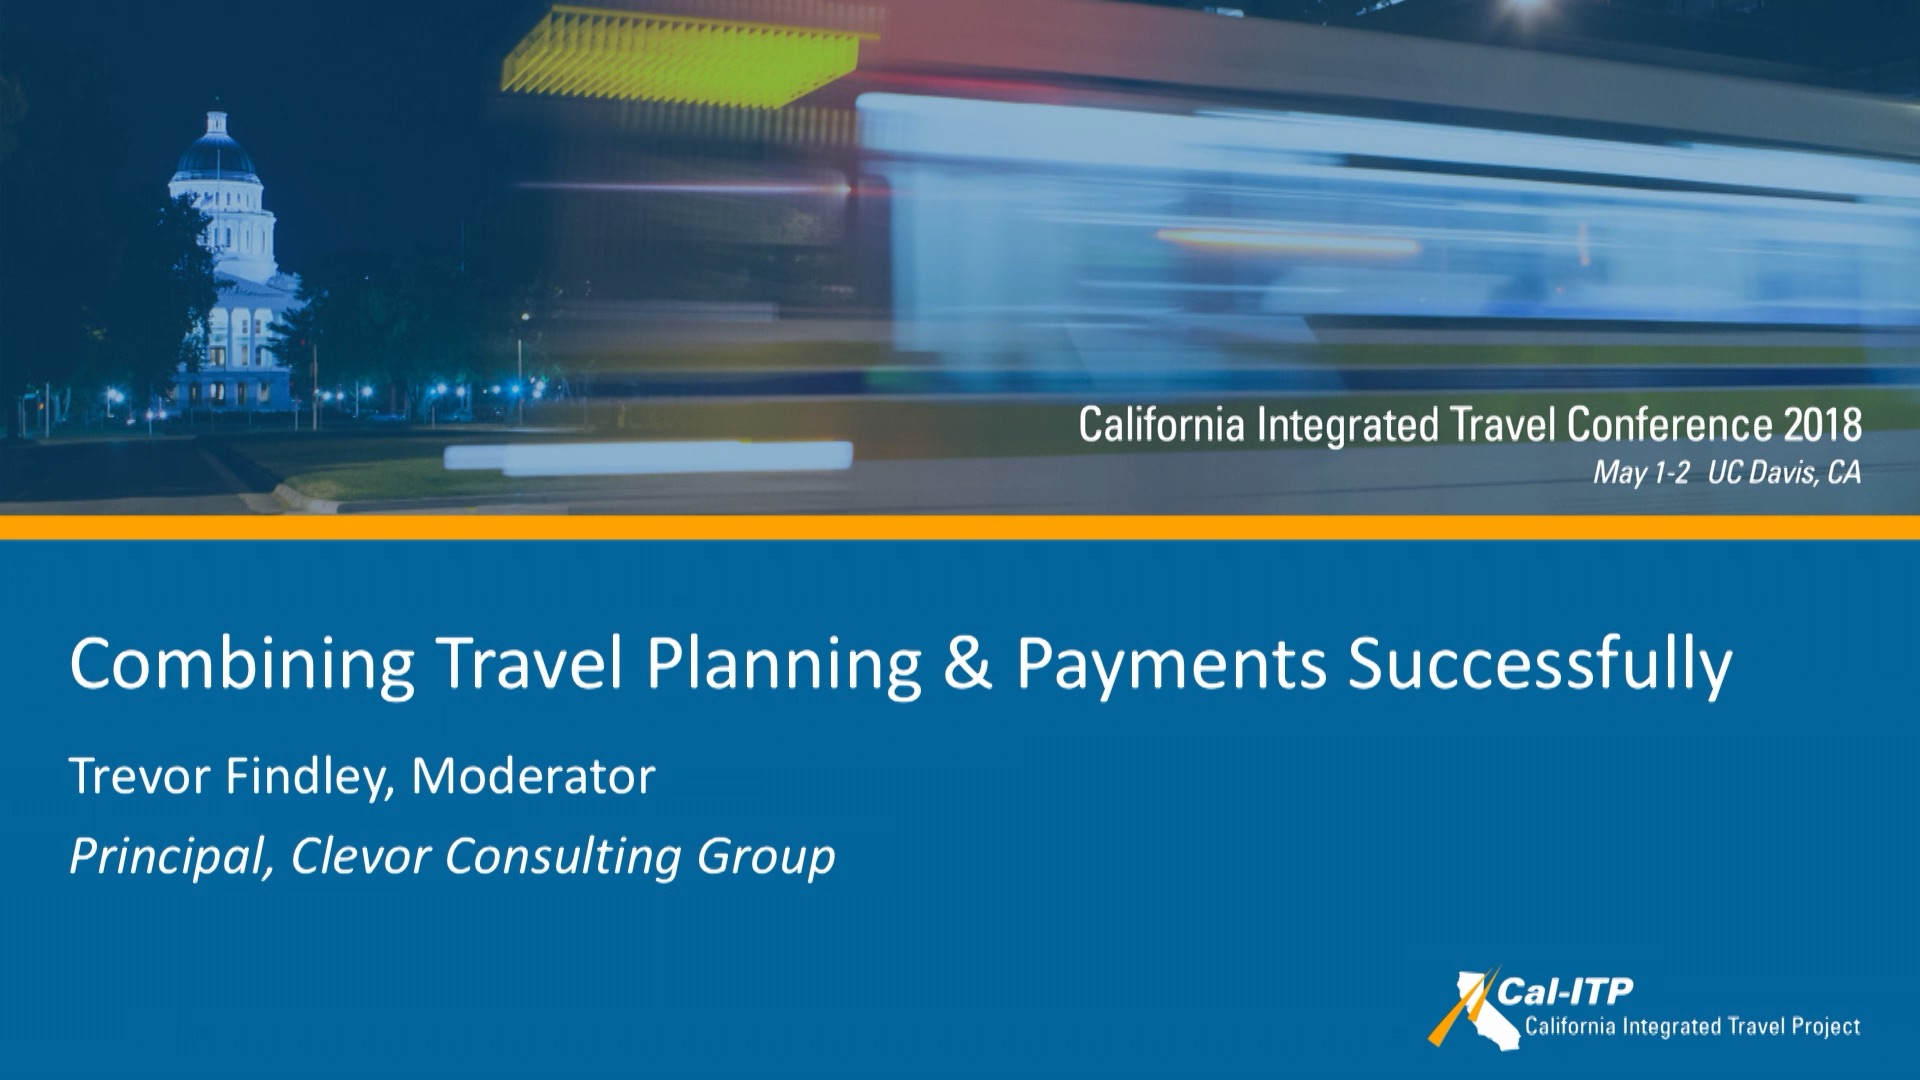 26. Combining Travel Planning & Payments Successfully